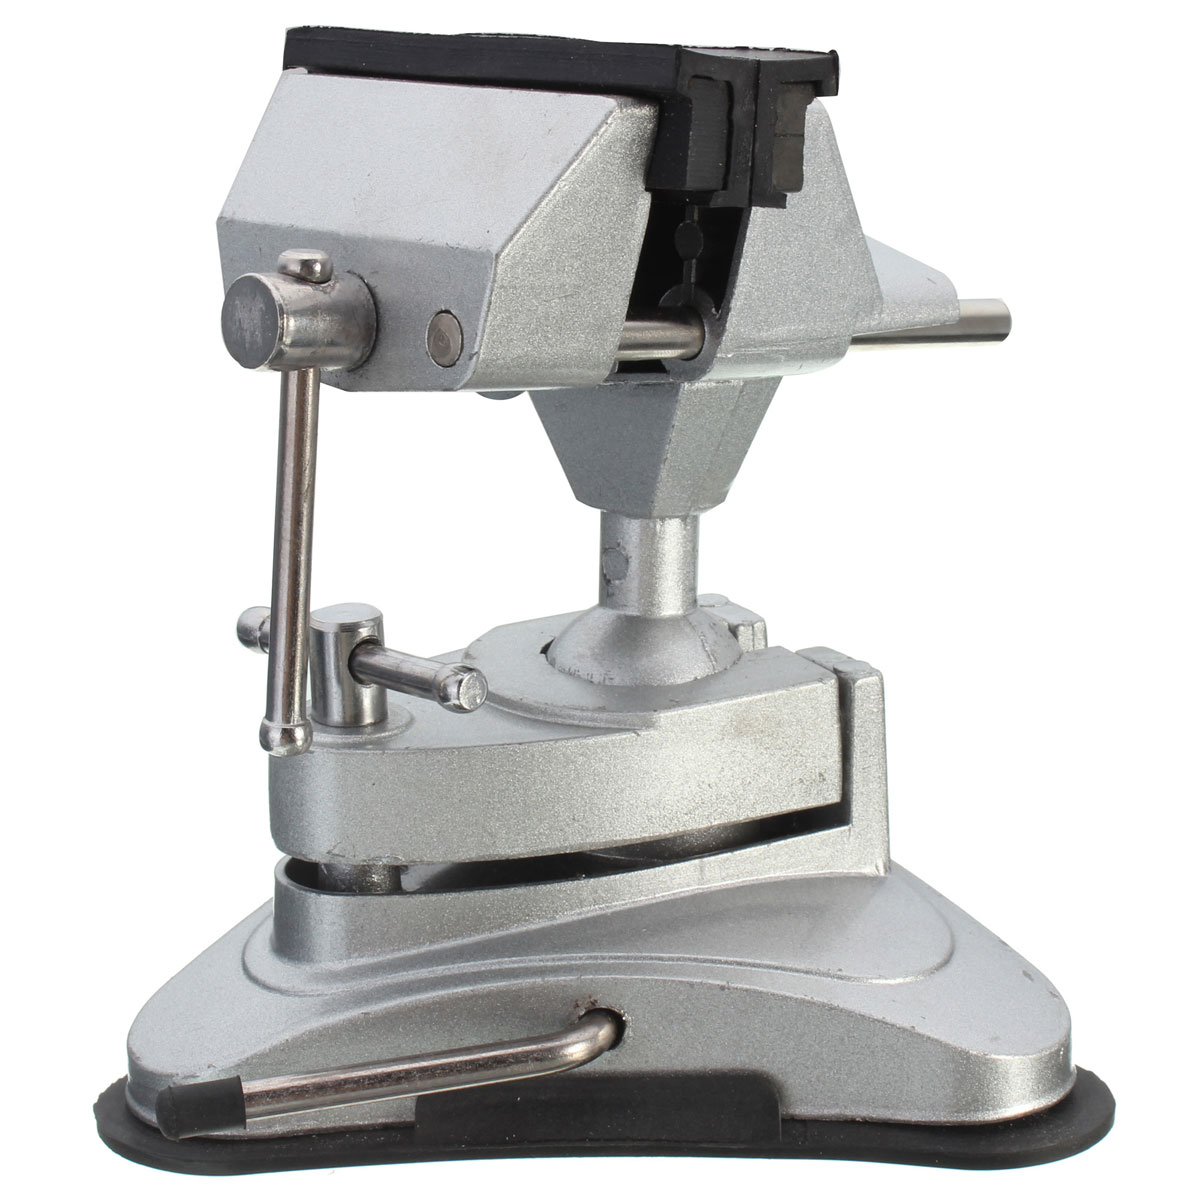 Table Top Bench Vice Vise 360 Rotates Tilts Adjustable